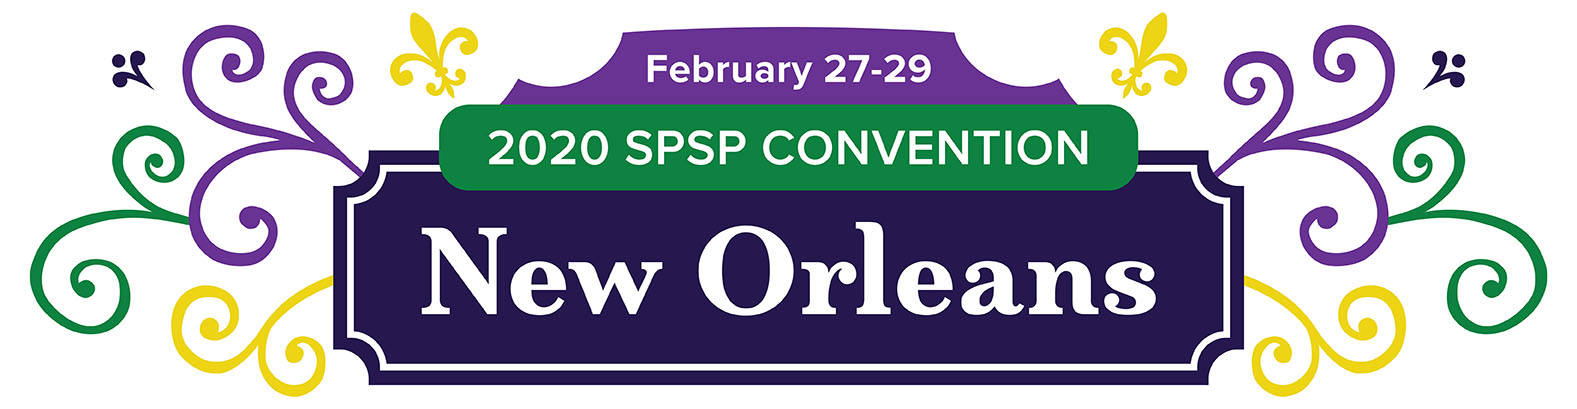 SPSP 2020 Convention Logo